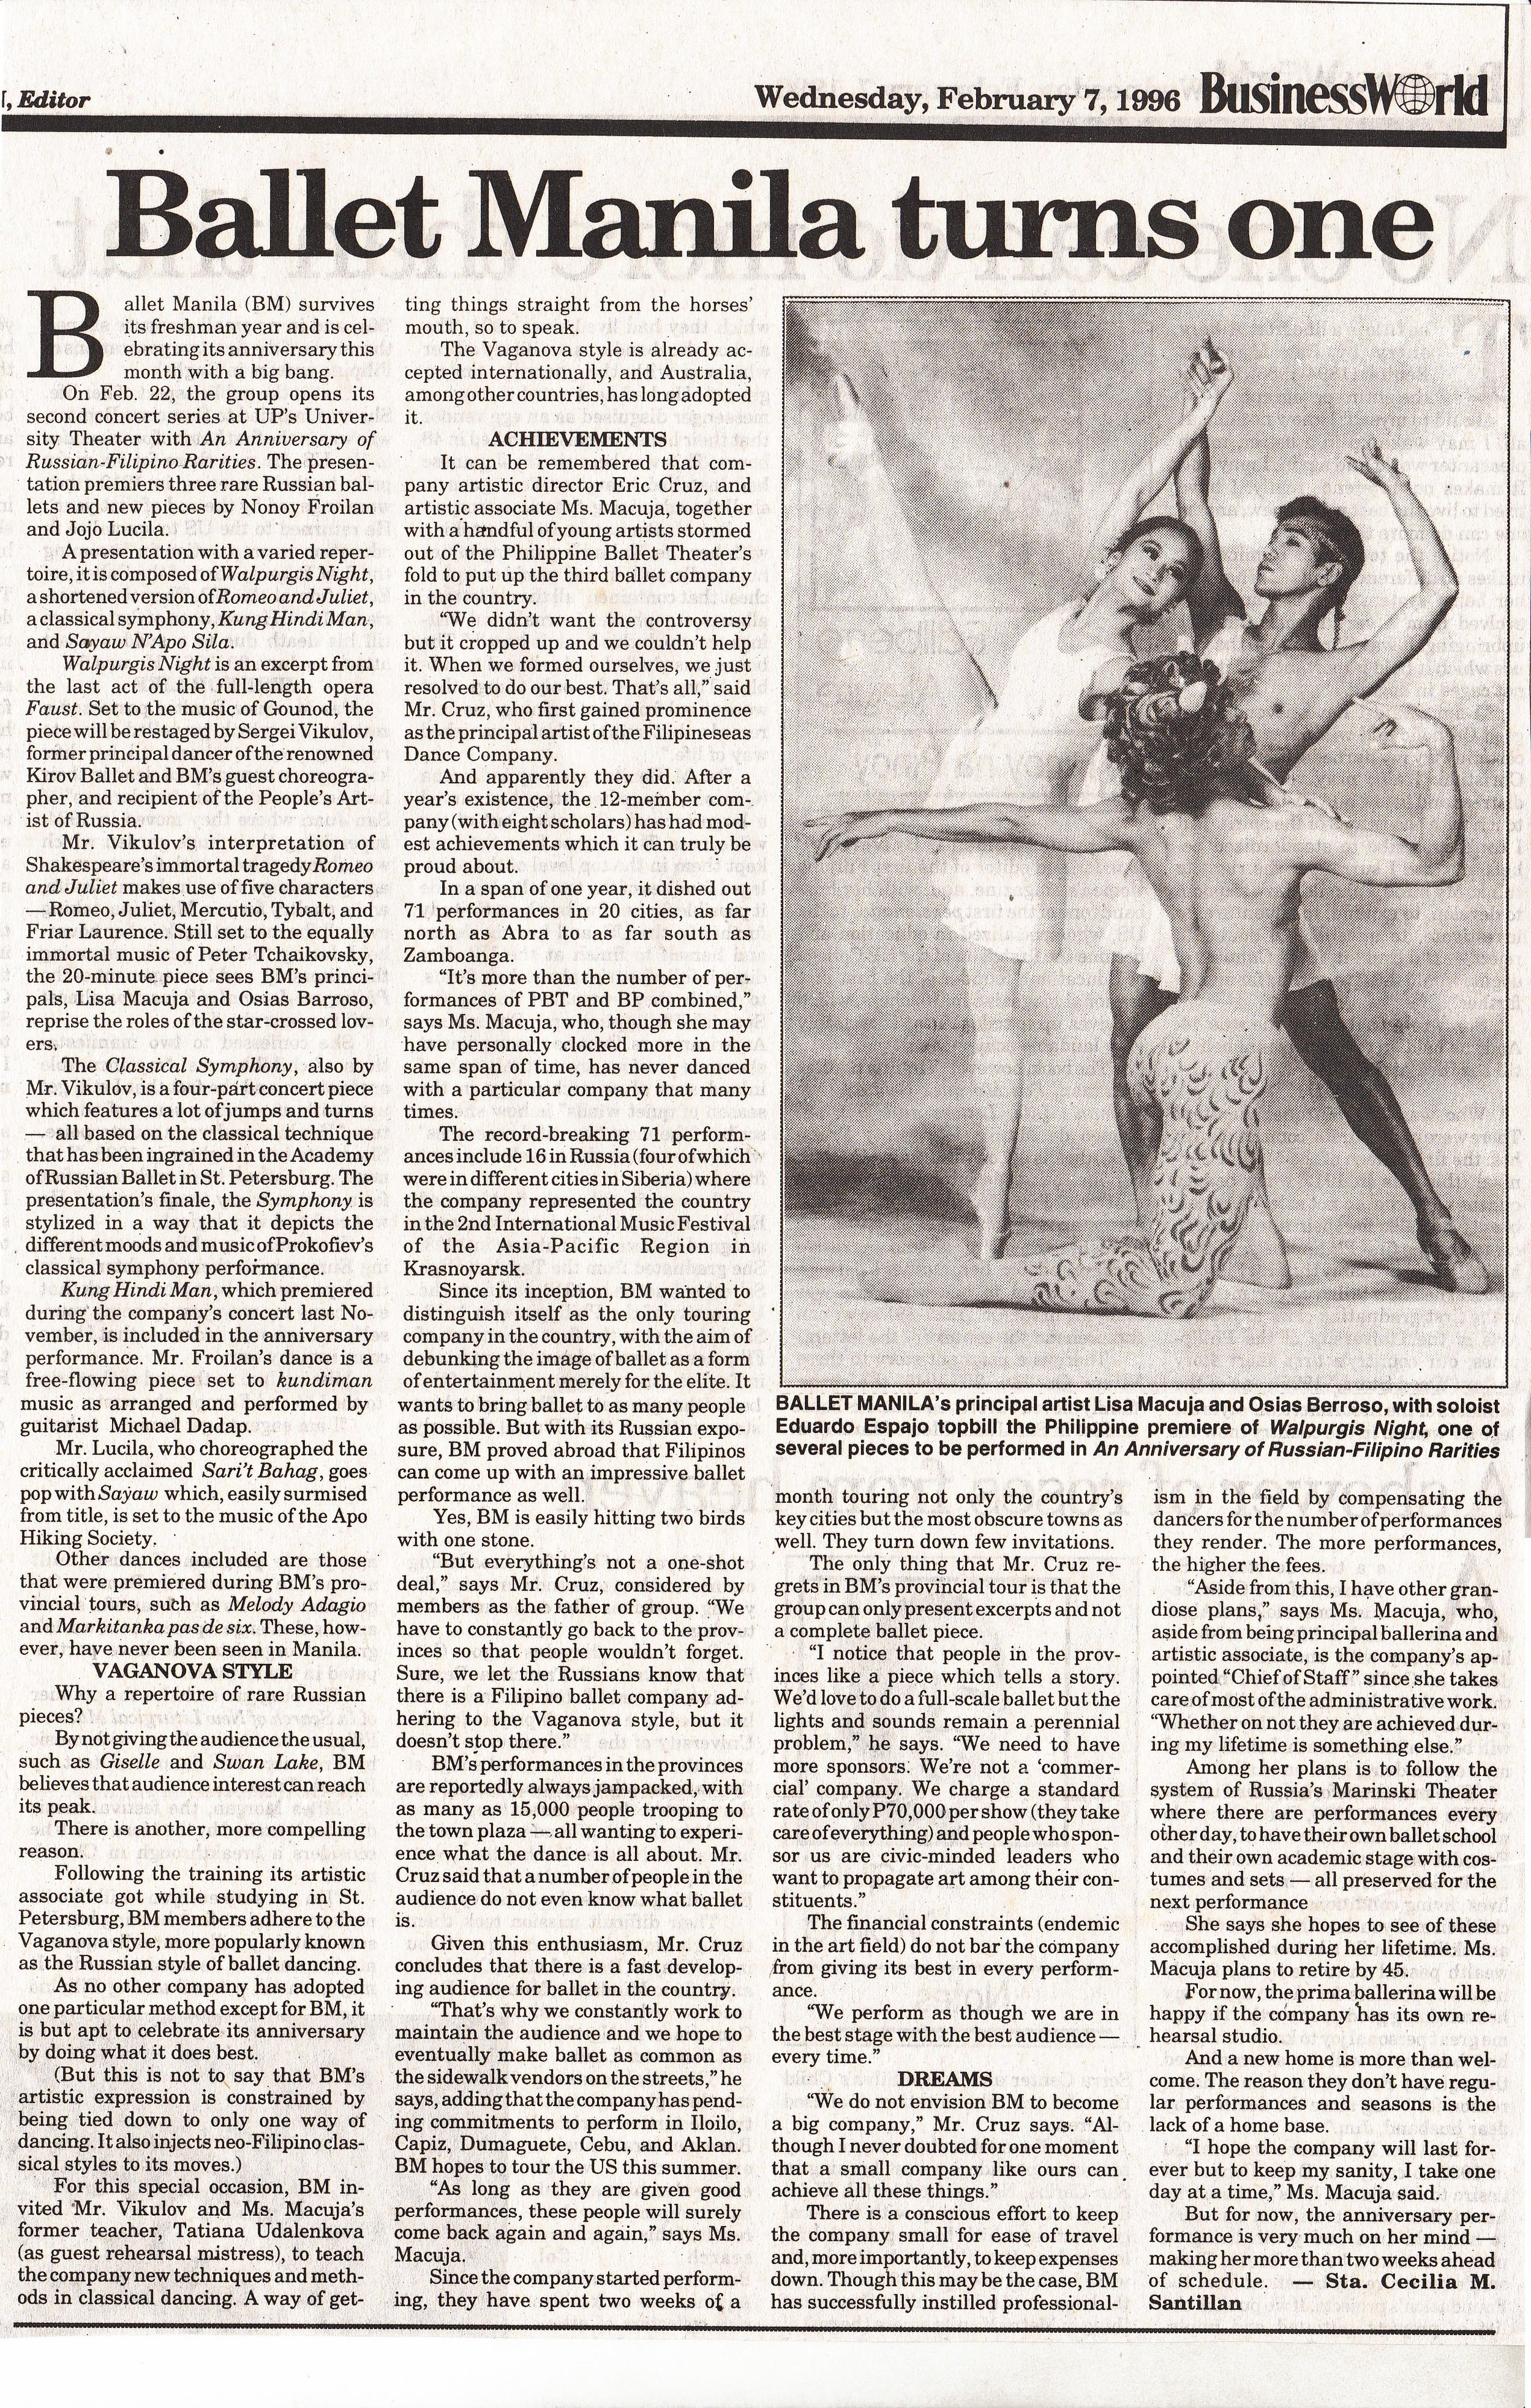 A feature story in BusinessWorld recounts Ballet Manila's milestone event. From the Ballet Manila Archives collection